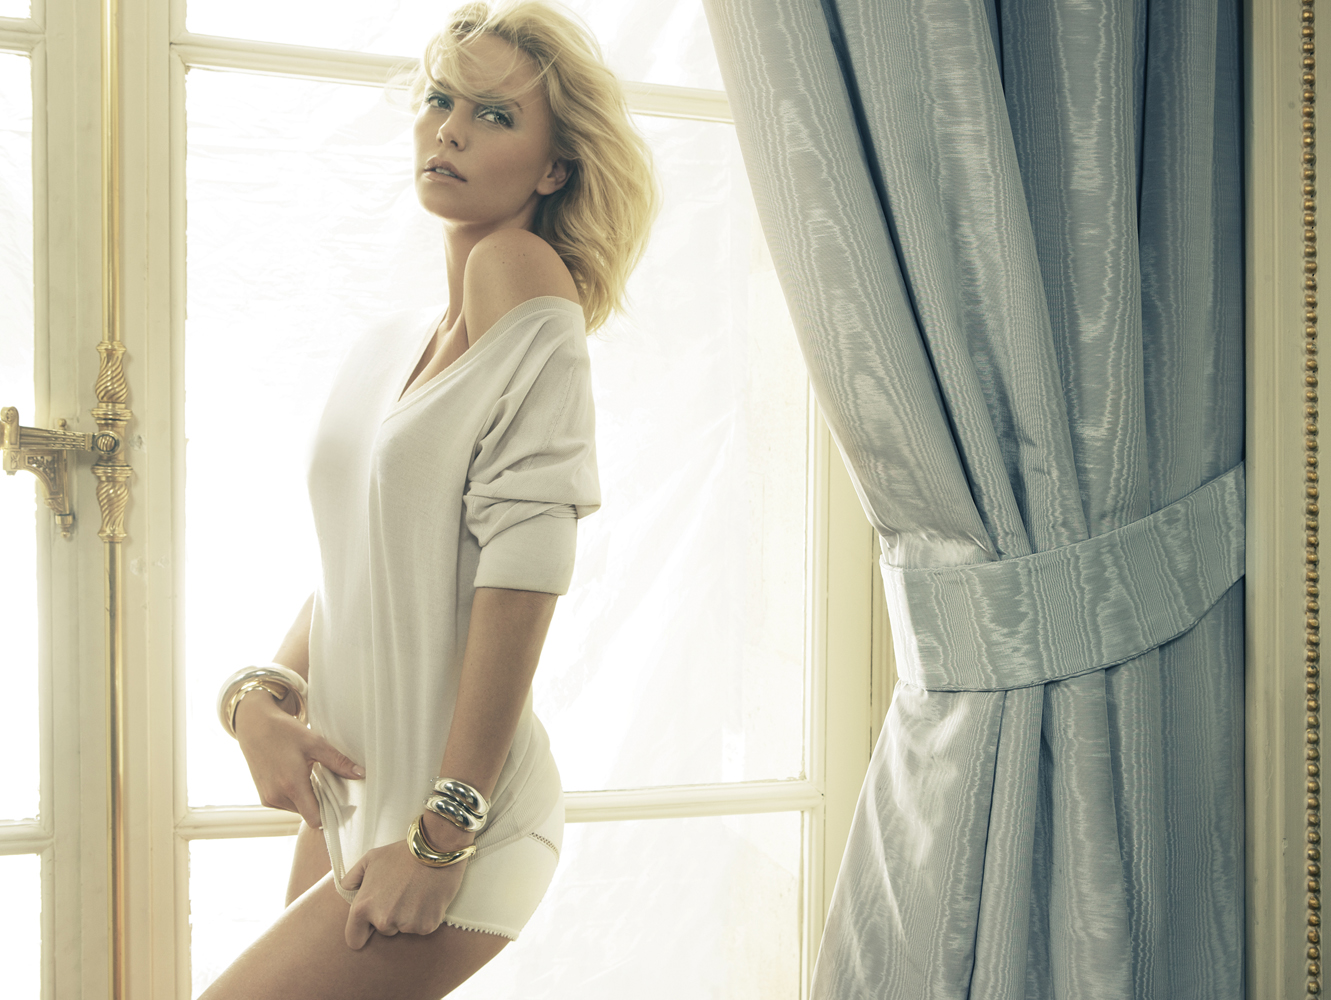 Charlize Theron photoshoot wearing a knit shirt